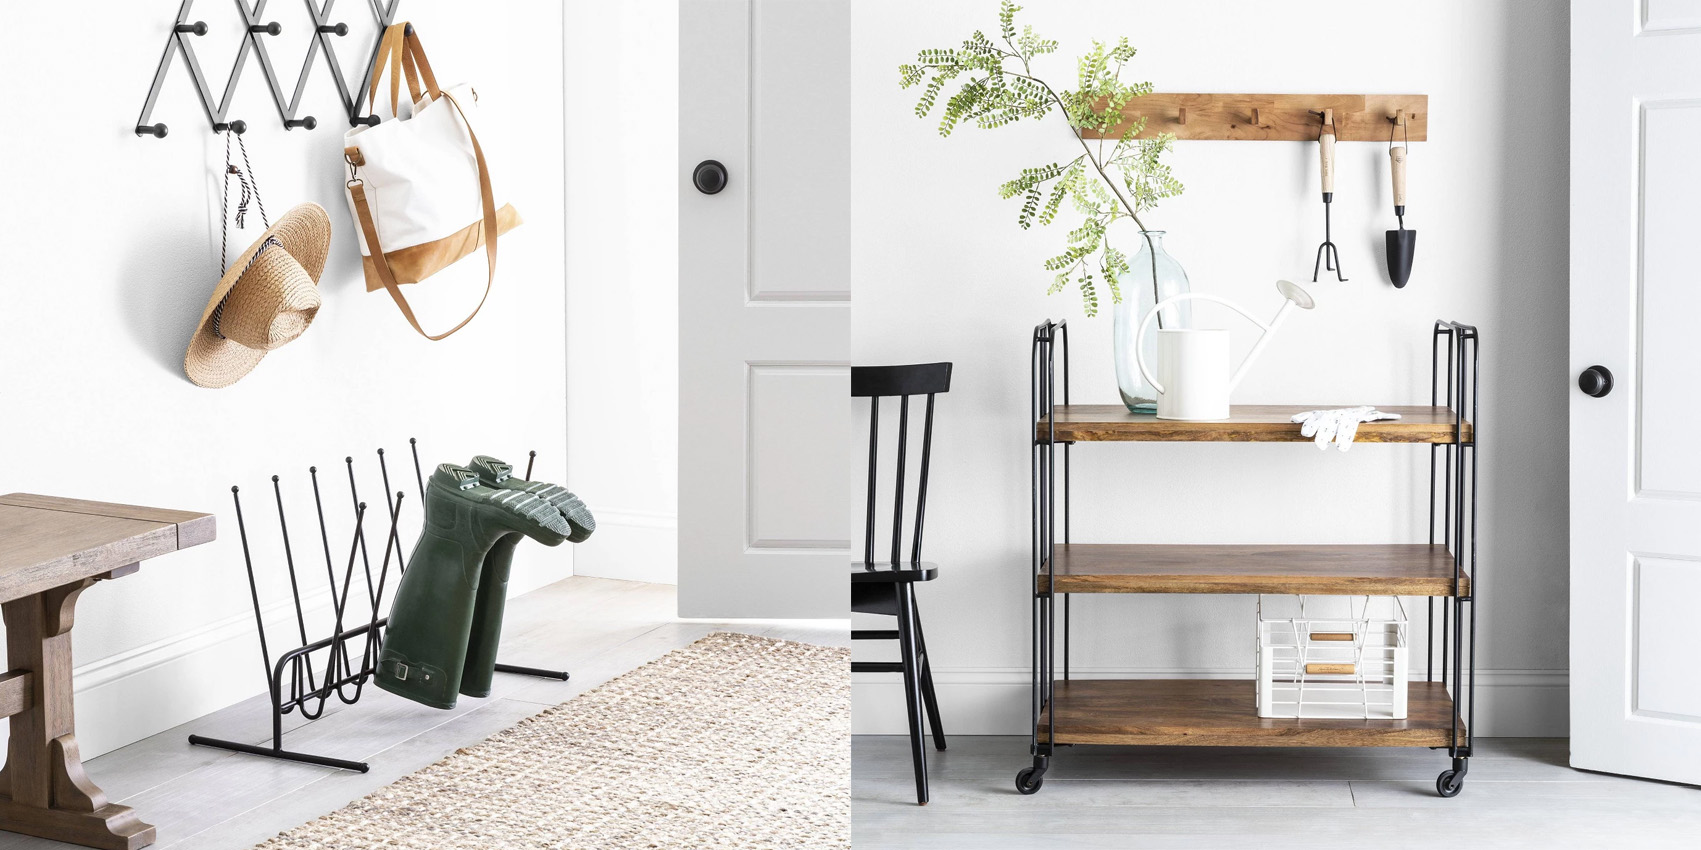 Welcome guests with Target's new spring arrivals from Hearth & Hand, starting at just $6